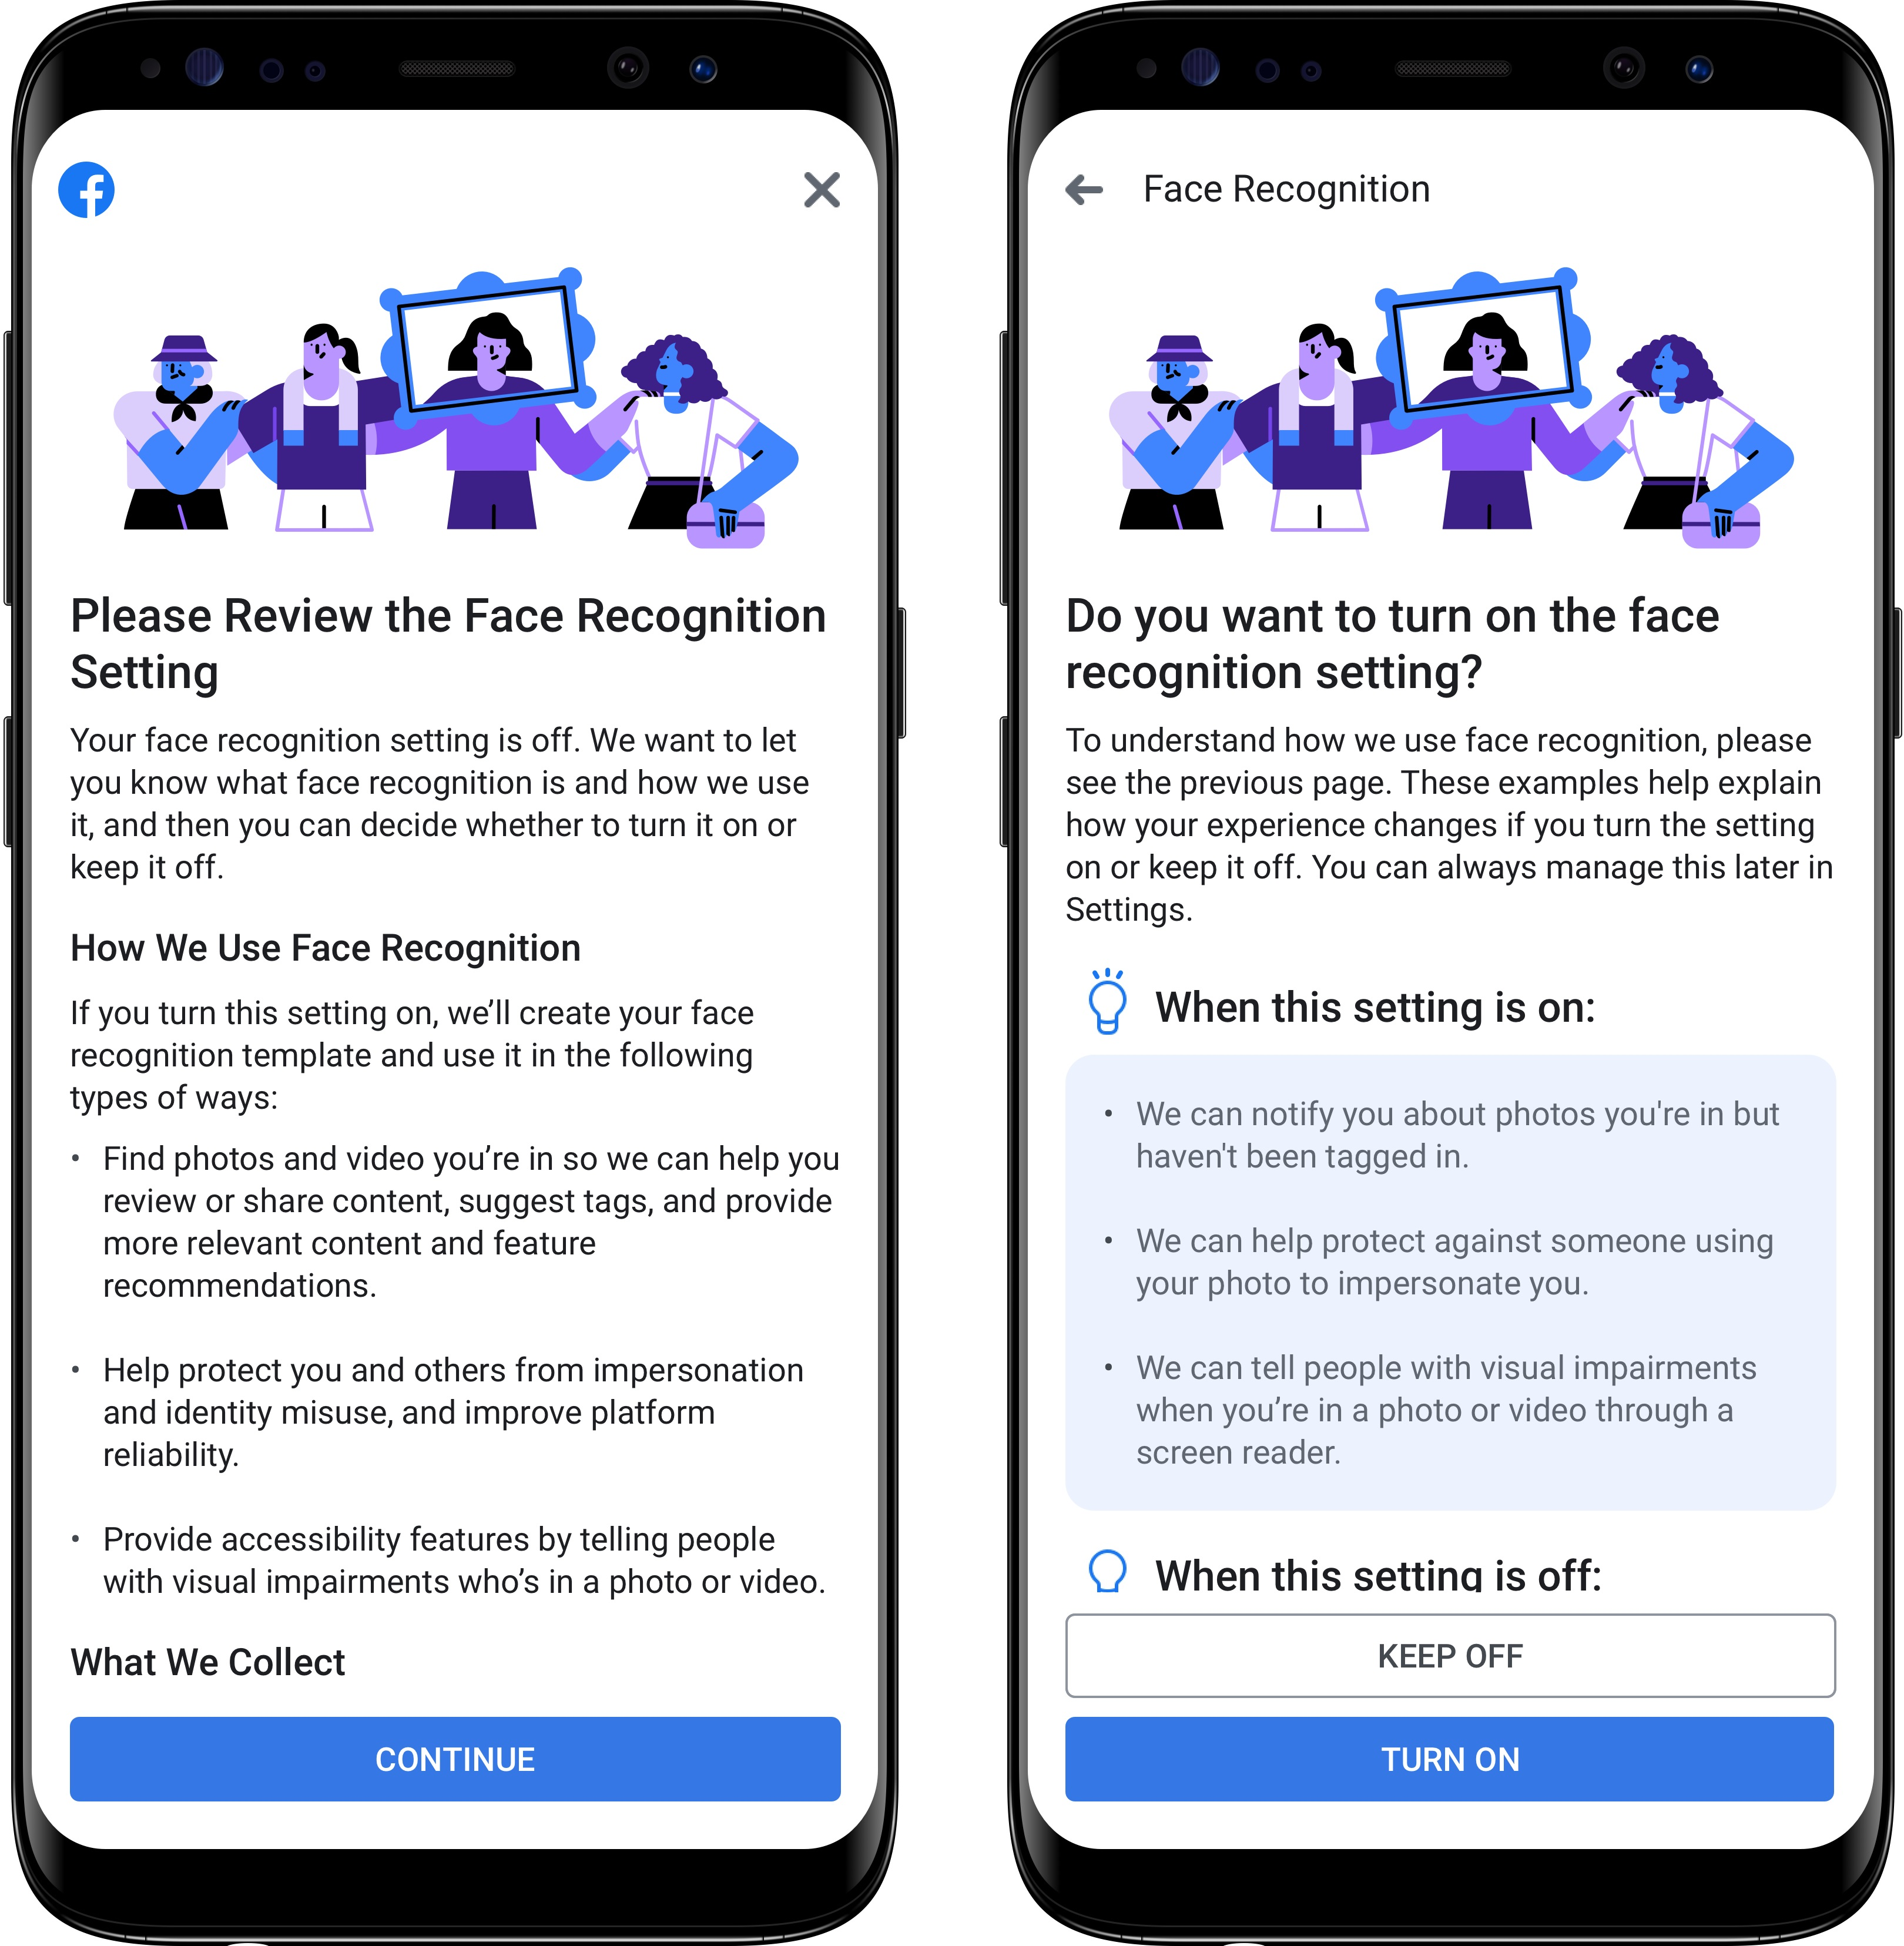 Facebook's face recognition setting review panel